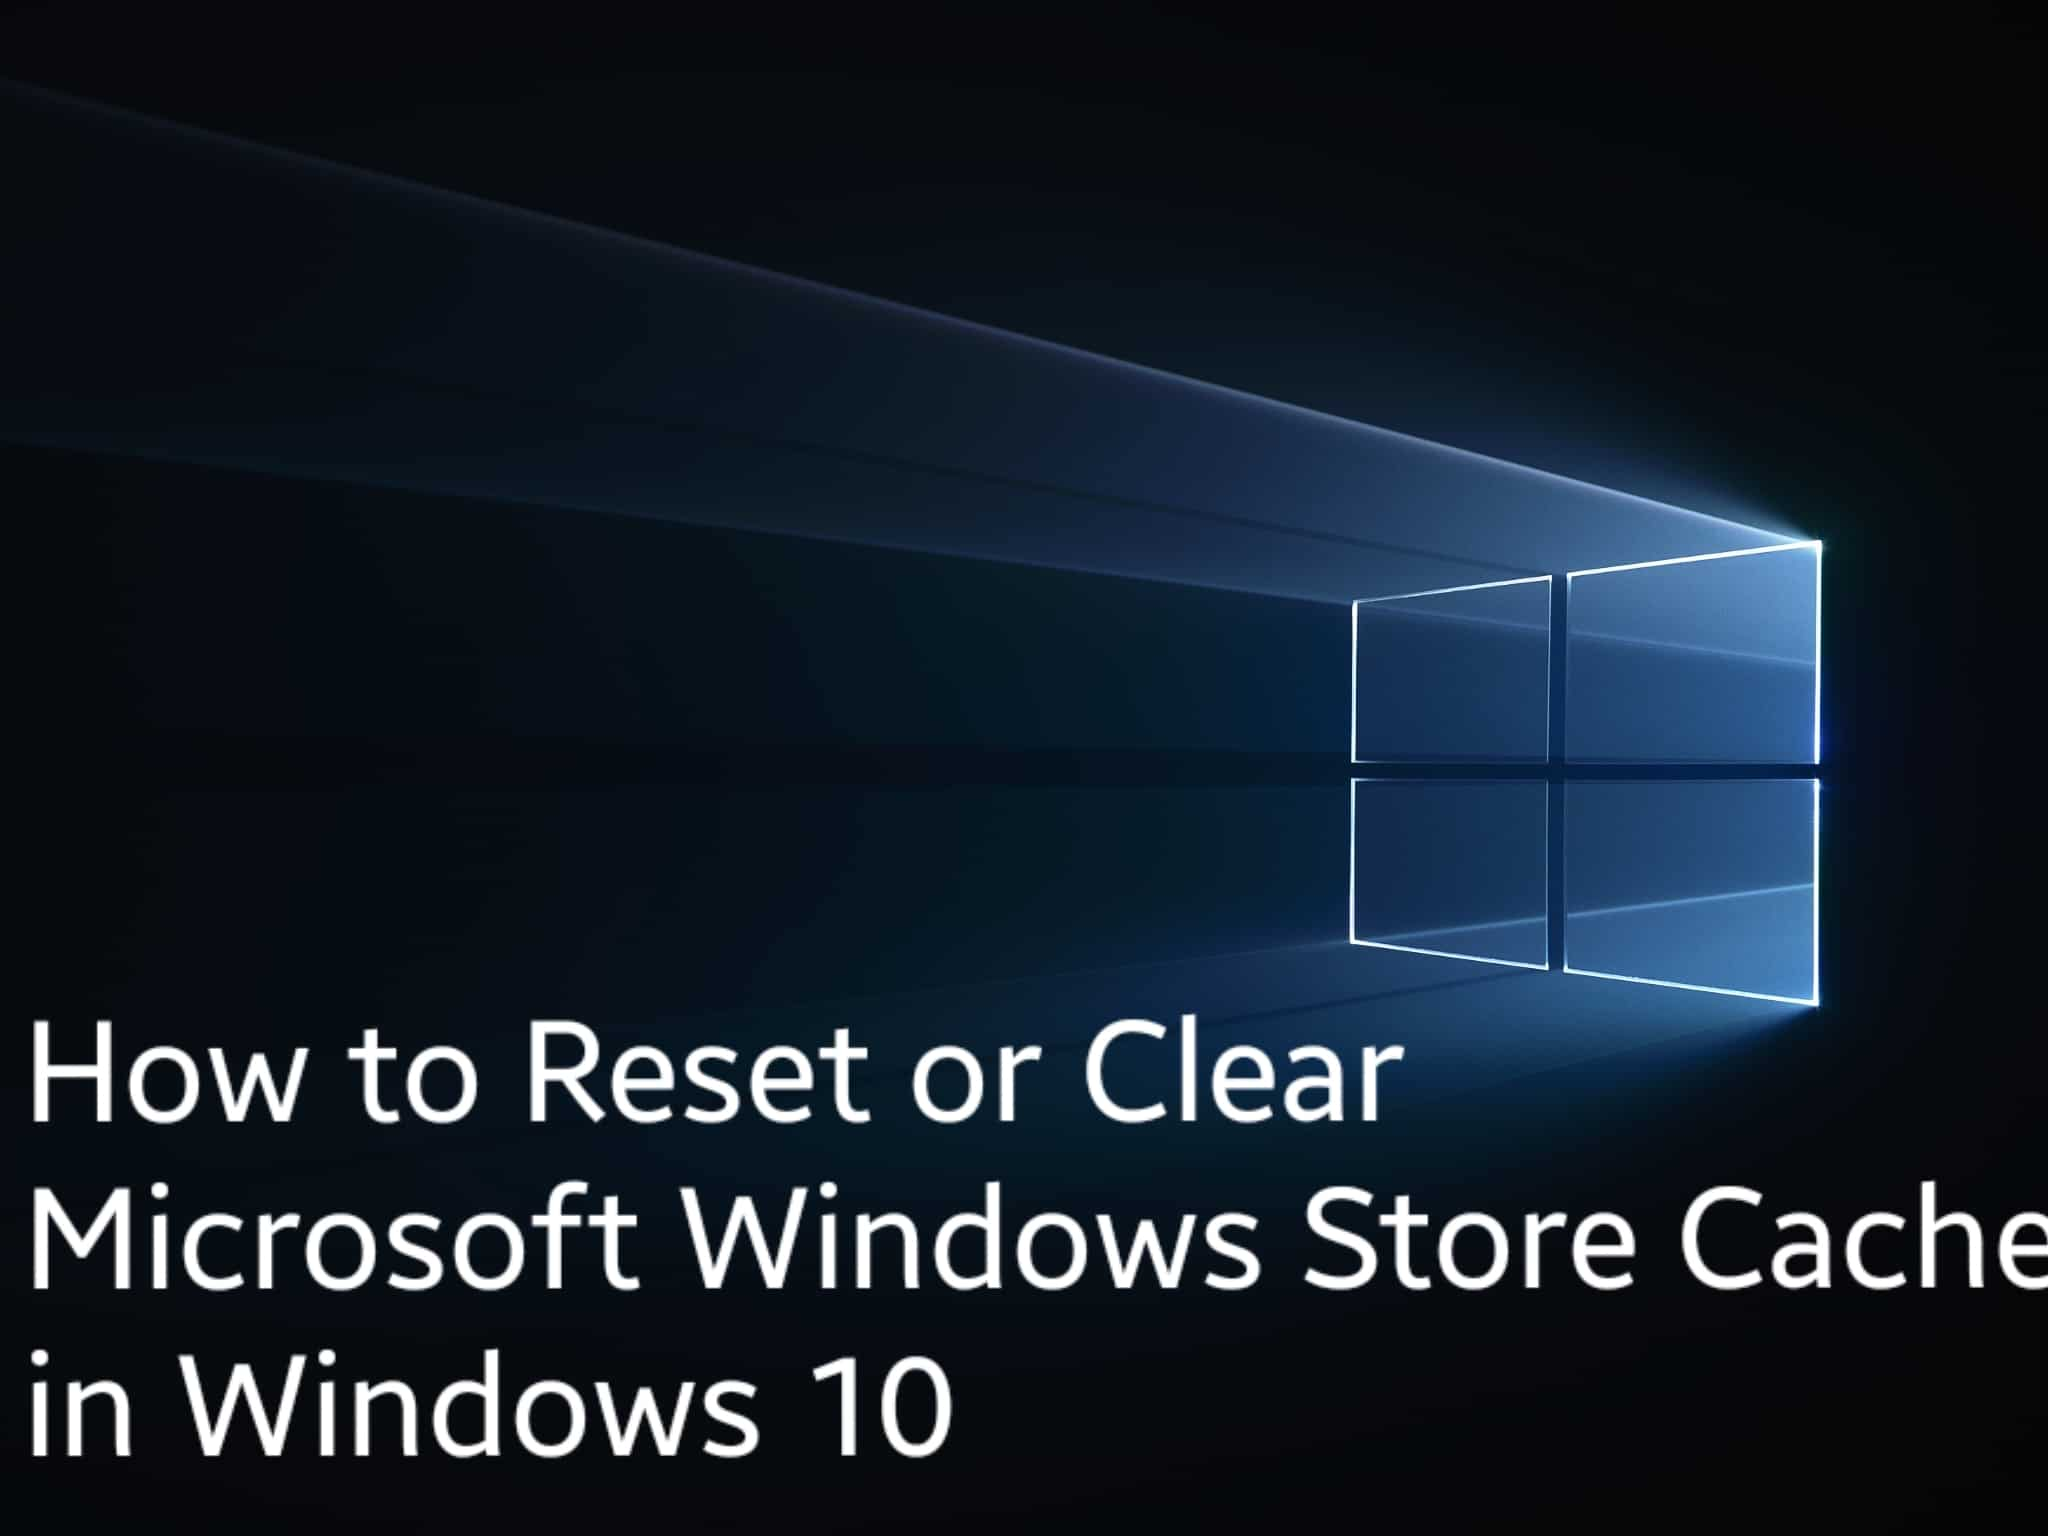 How to Reset or Clear Microsoft Windows Store Cache in